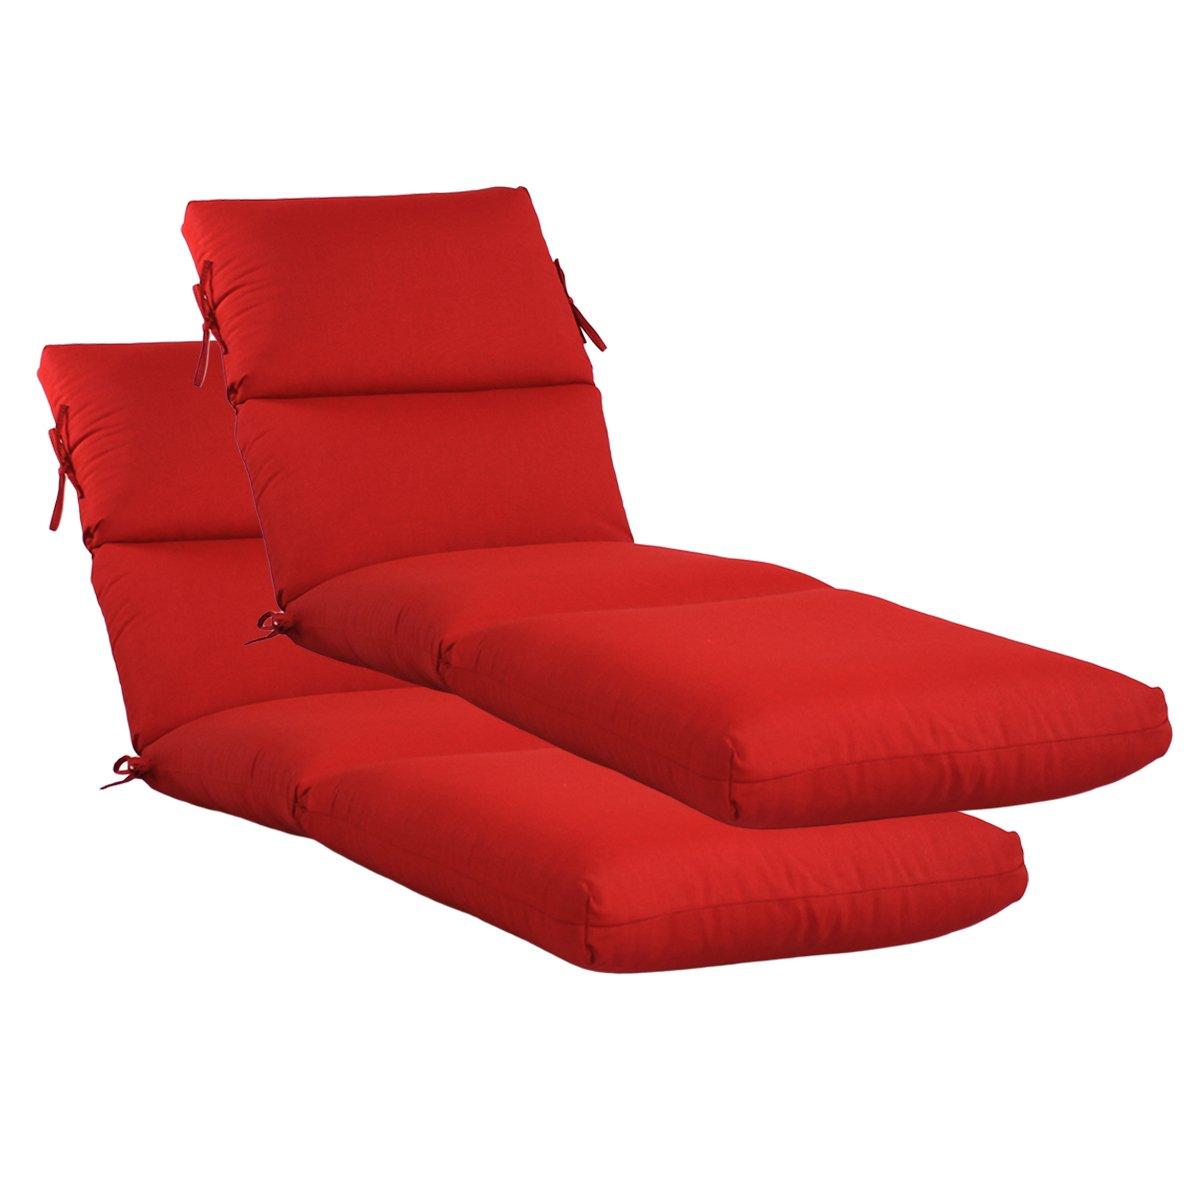 Set of 2 Outdoor Channeled Chaise Cushion 22W x 72L x 4.5H Hinge at 26'' in Olefin Fabric Ruby by Comfort Classics Inc.